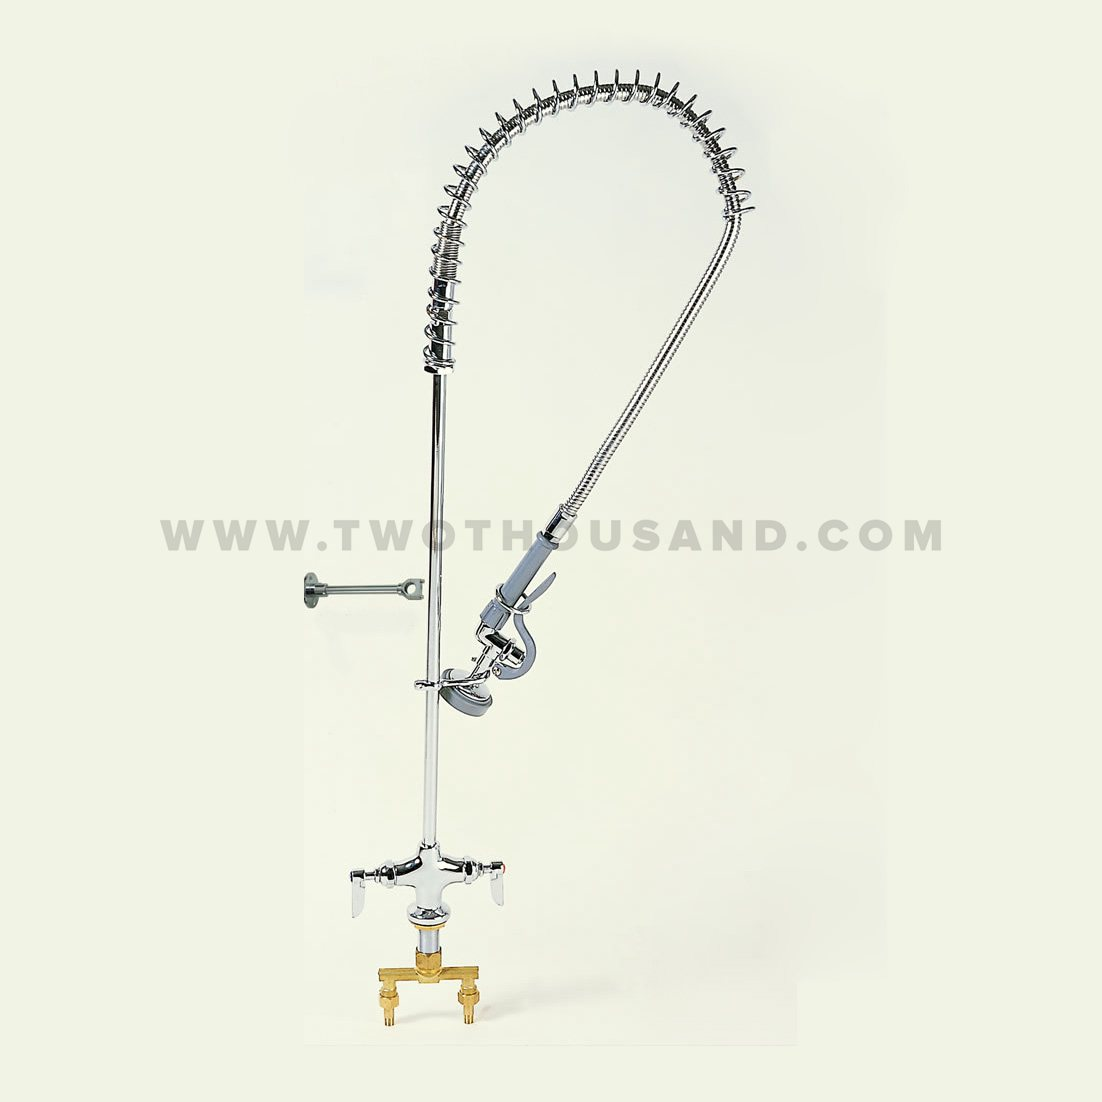 Tt Fa140a Hot Sale Commercial High Pressure Kitchen Sink Faucet View Kitchen Sink Faucet Twothousand Product Details From Guangzhou Twothousand Machinery Co Ltd On Alibaba Com